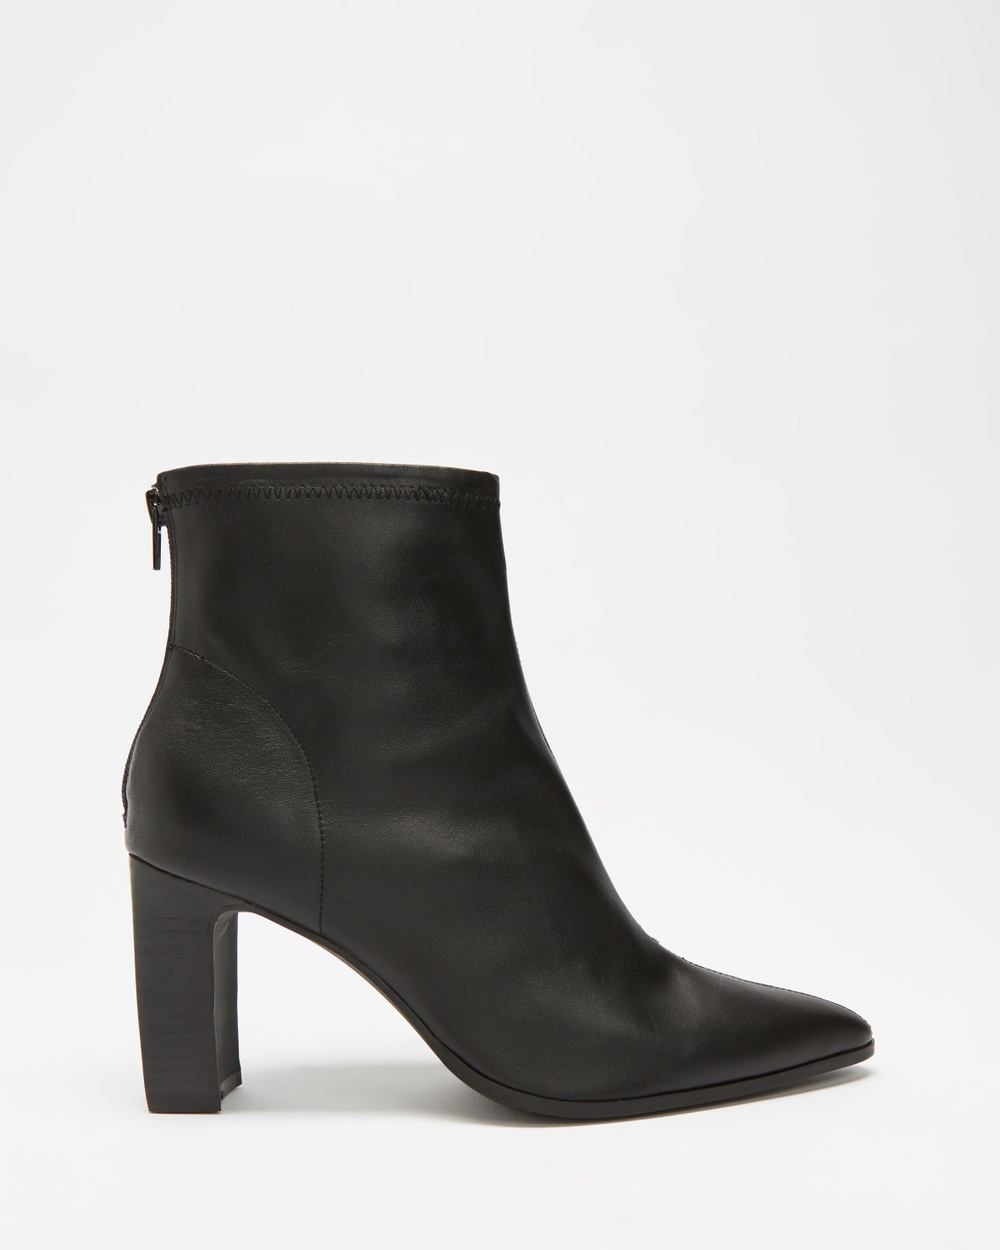 AERE Stretch Leather Ankle Boots Black Leather